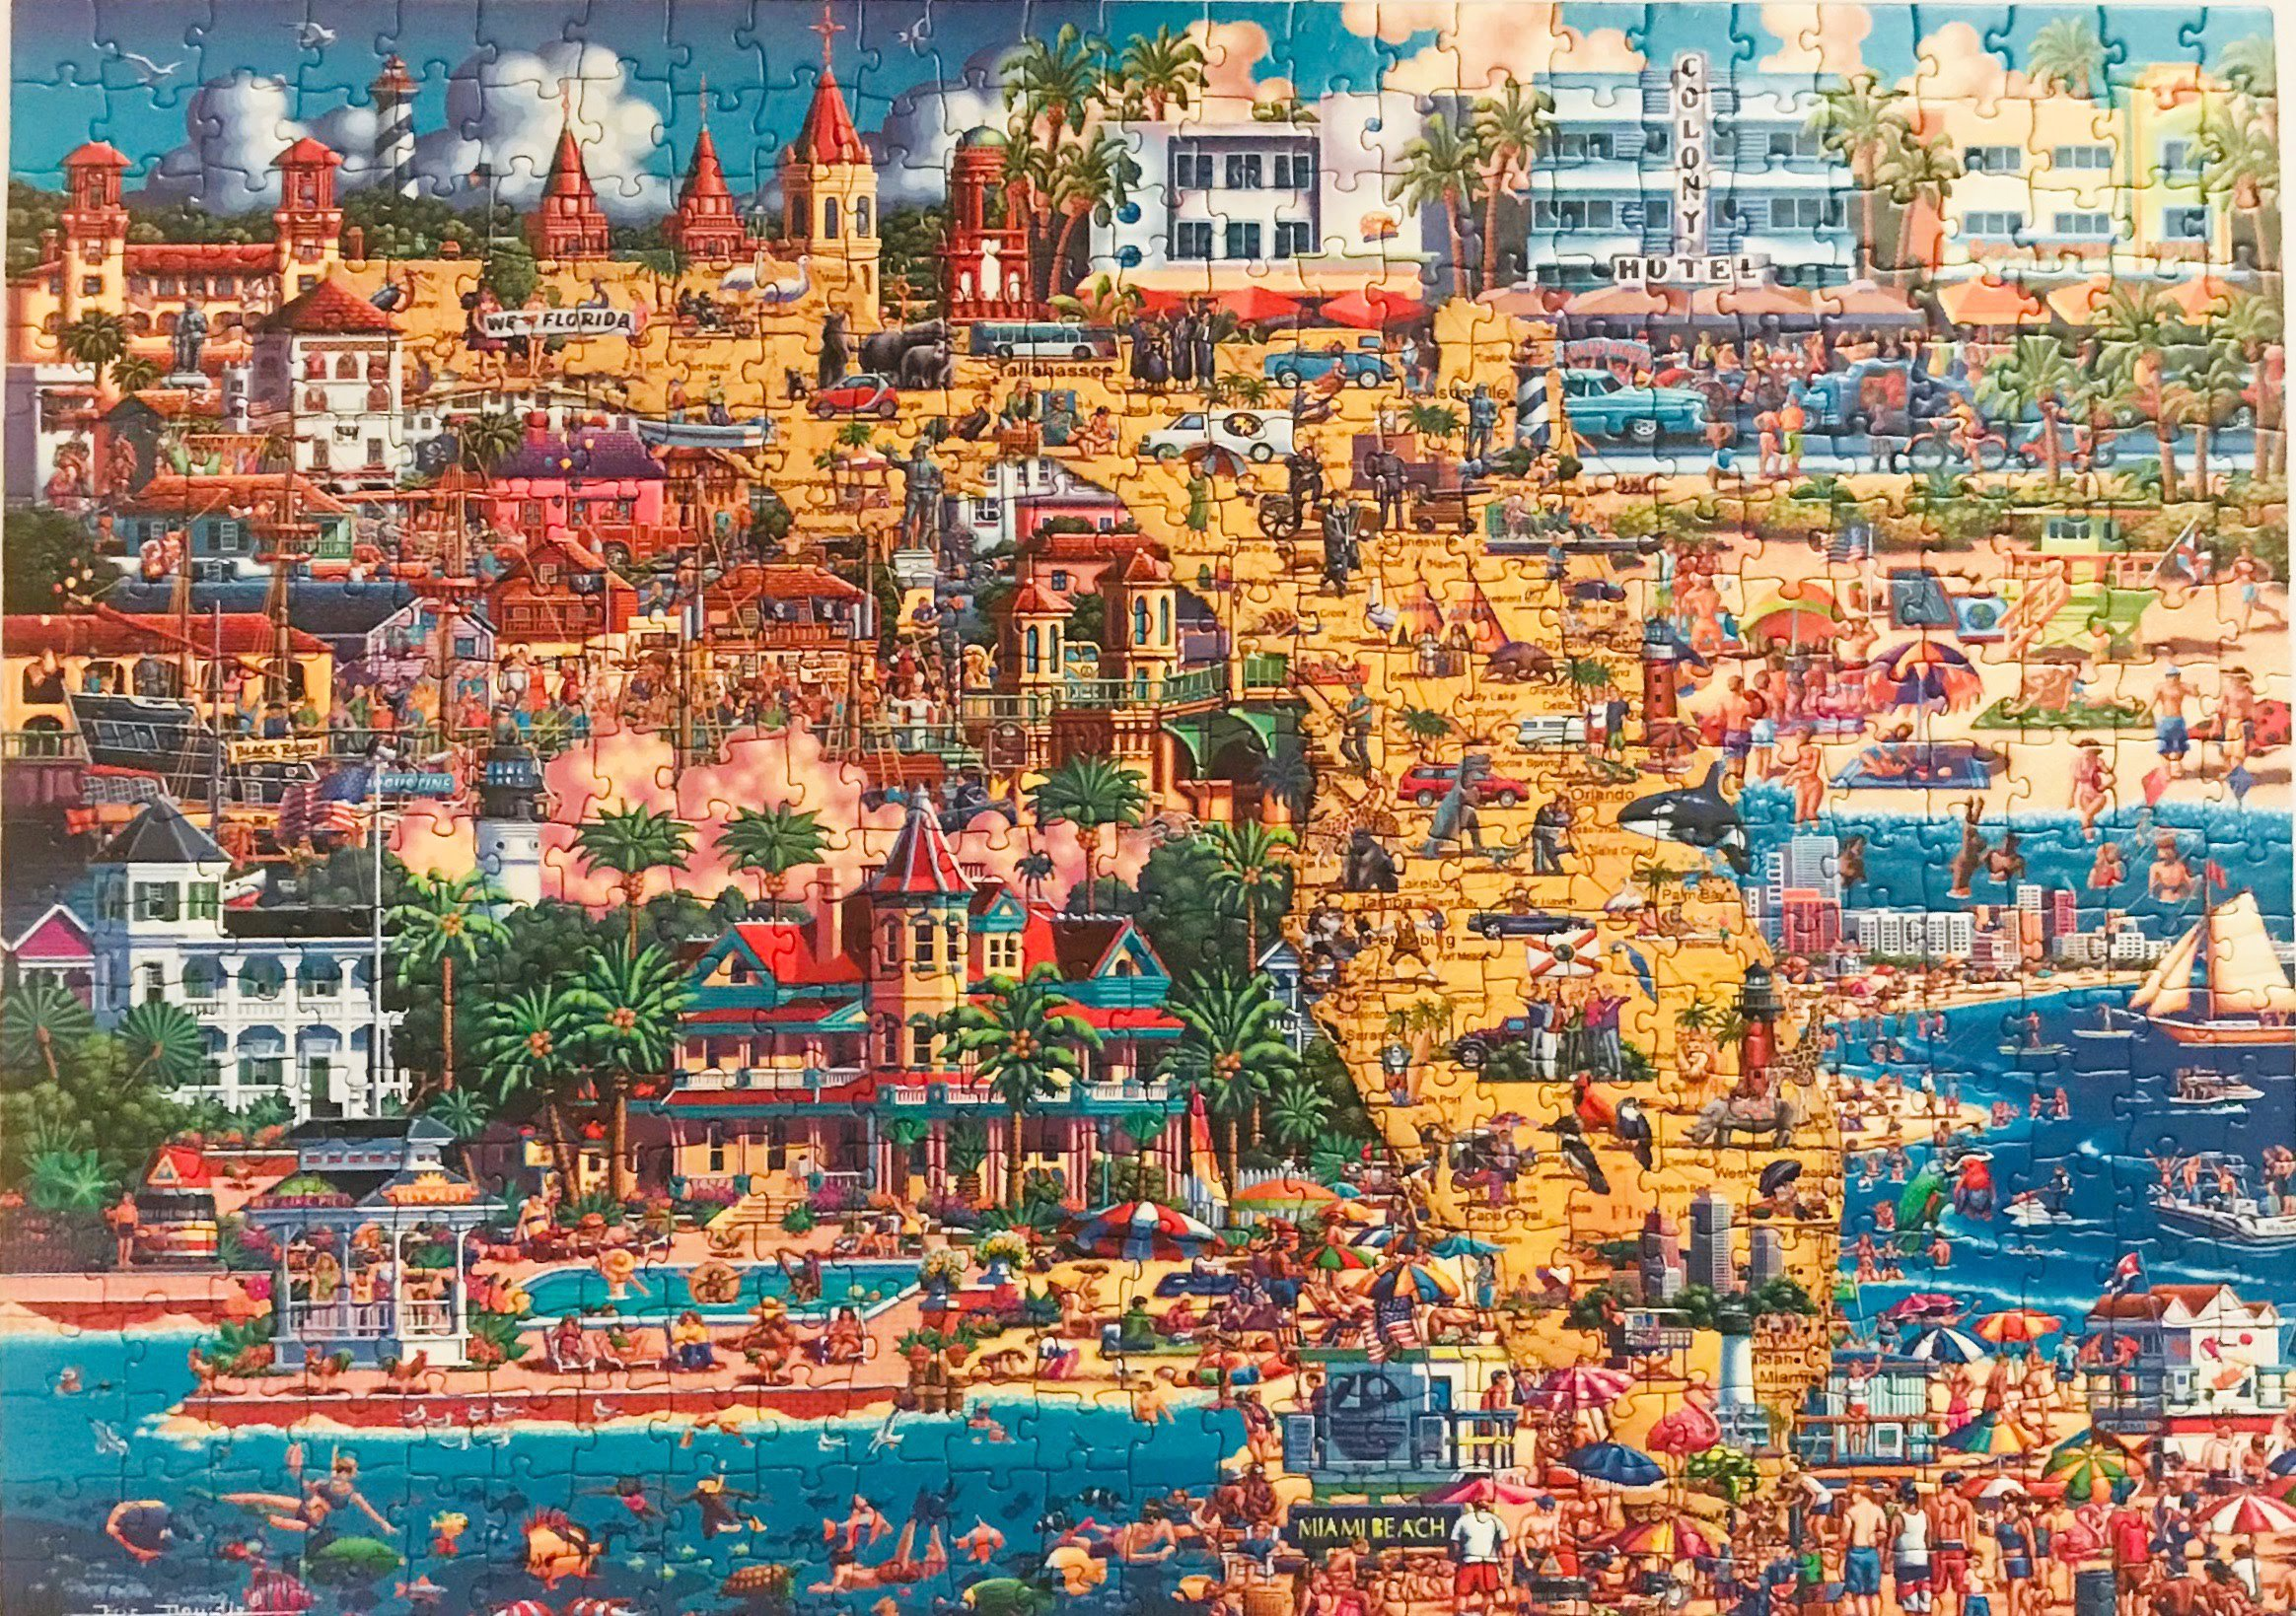 A large puzzle of a beach scene